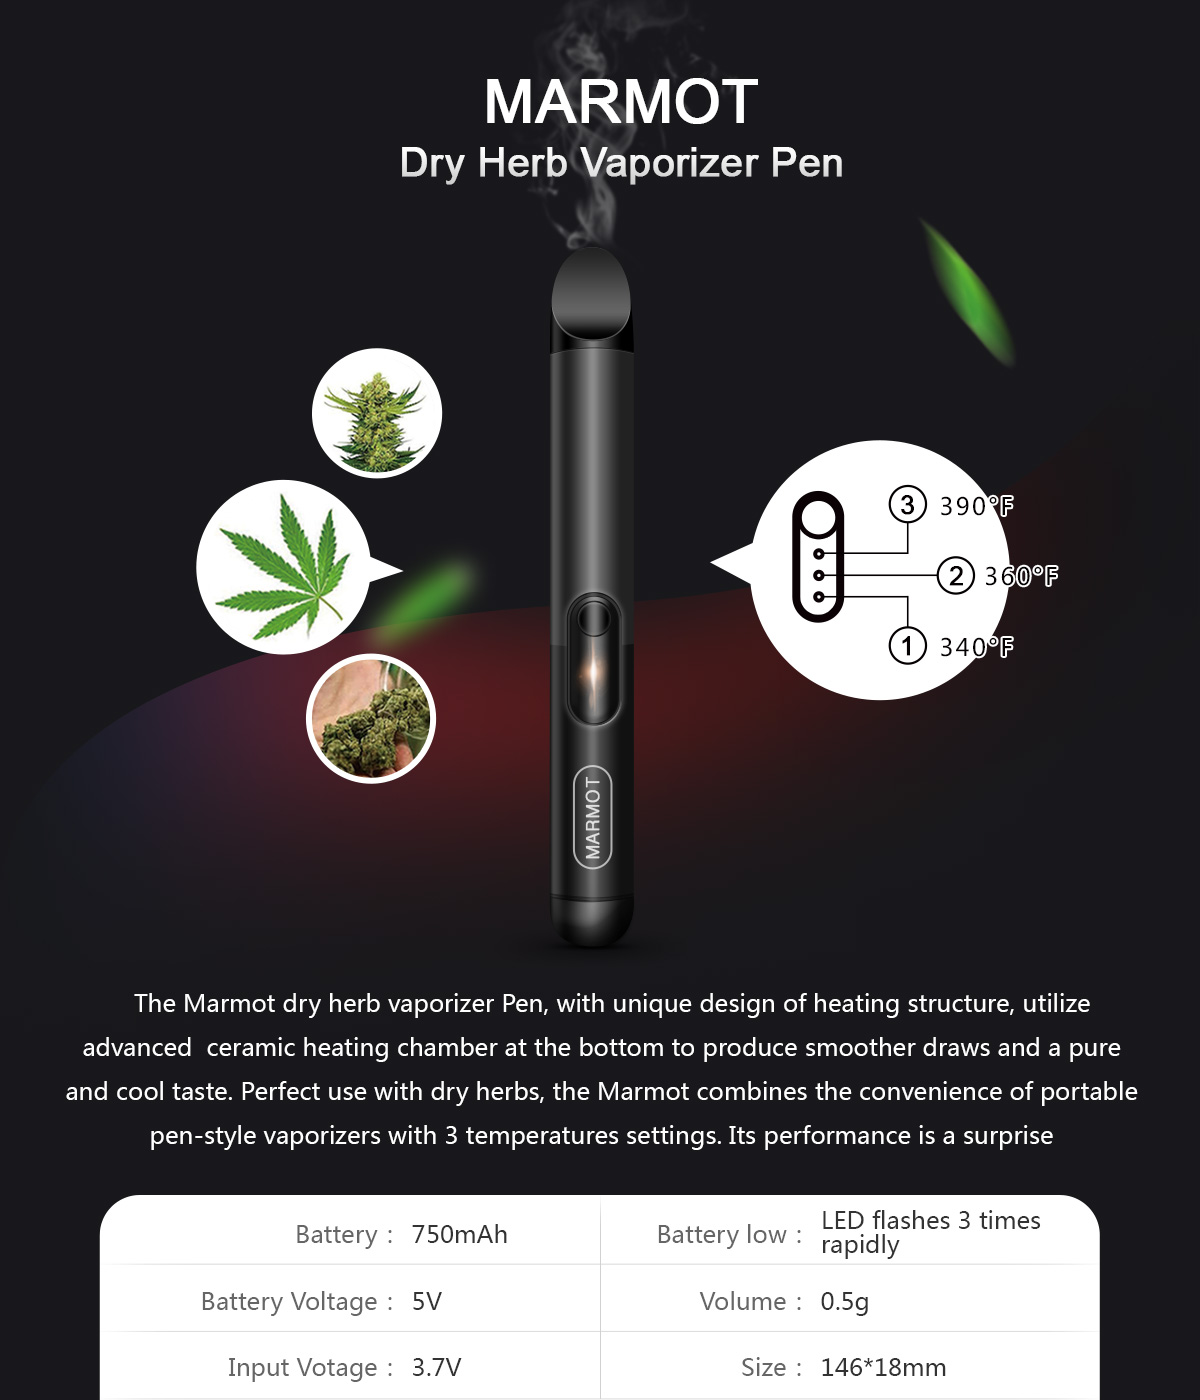 ATMAN Marmot Dry Herb Vaporizer Pen Ceramic Heating With 3 Temperature Settings Pure Taste